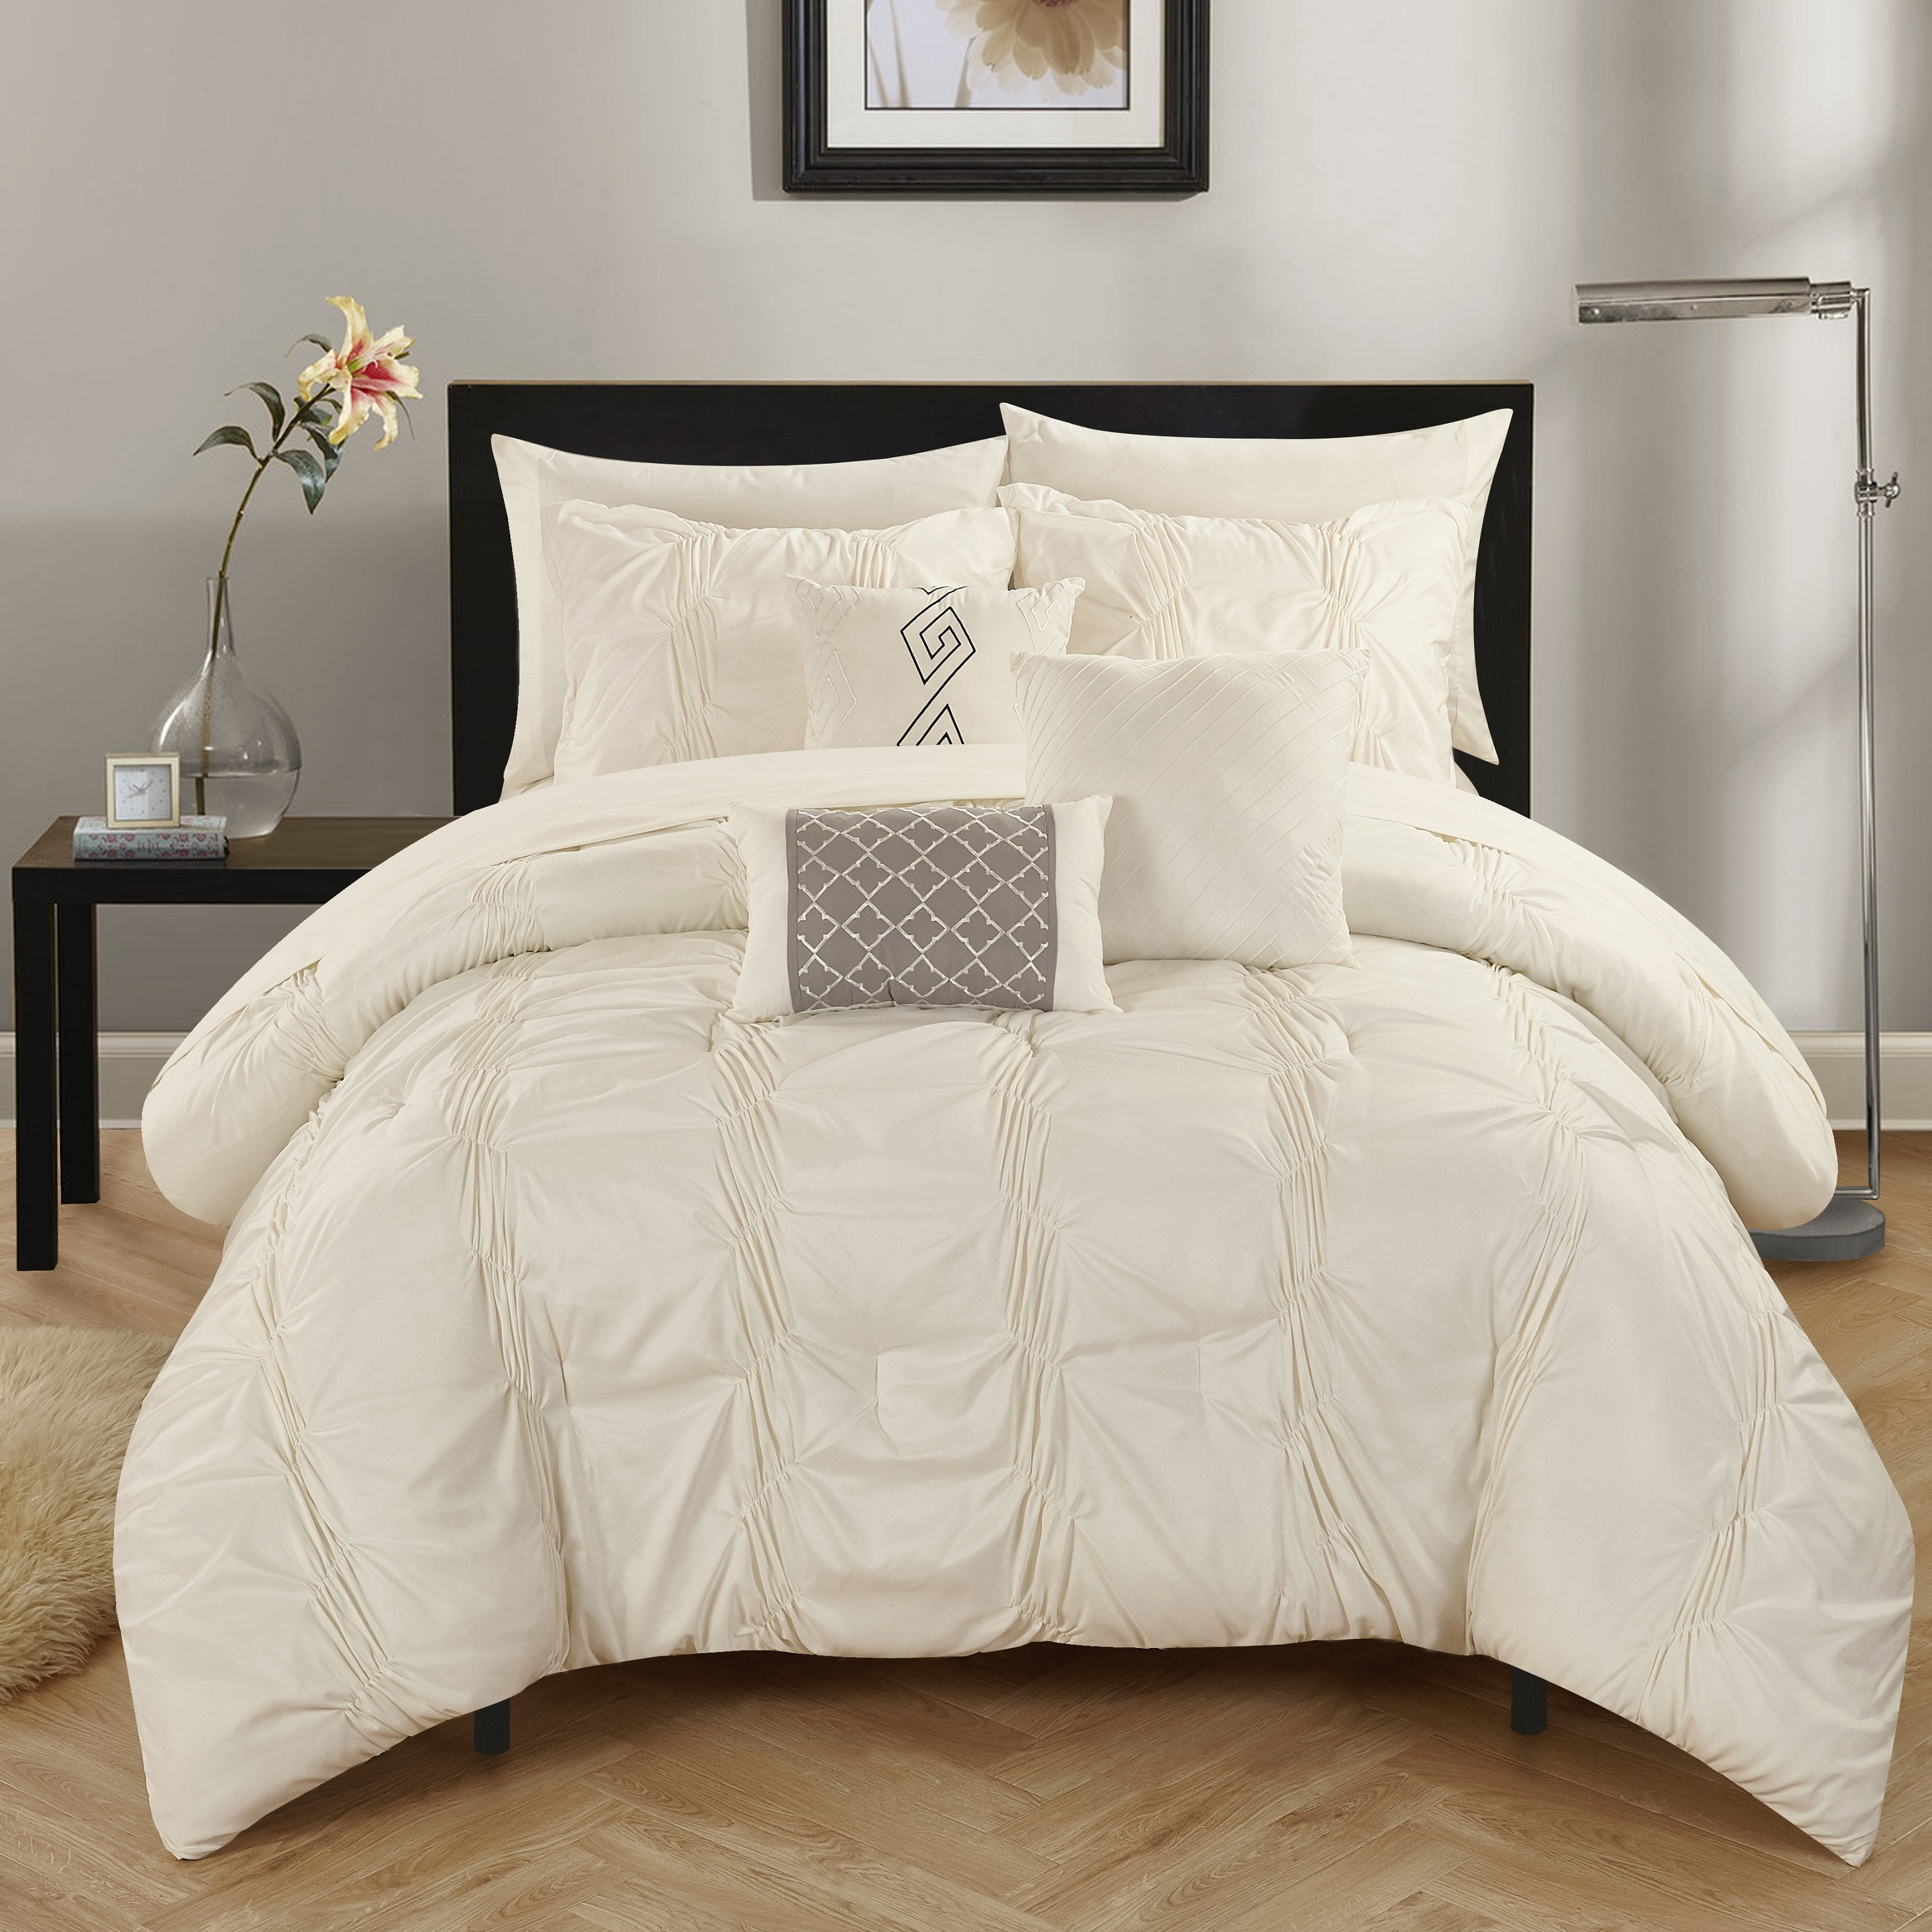 Chic Home 10 Piece Luna Pinch Pleated Ruffled And Pleated Complete King Bed In A Bag Comforter Set Beige Sheets Set And Decorative Pillows Included Walmart Com Walmart Com